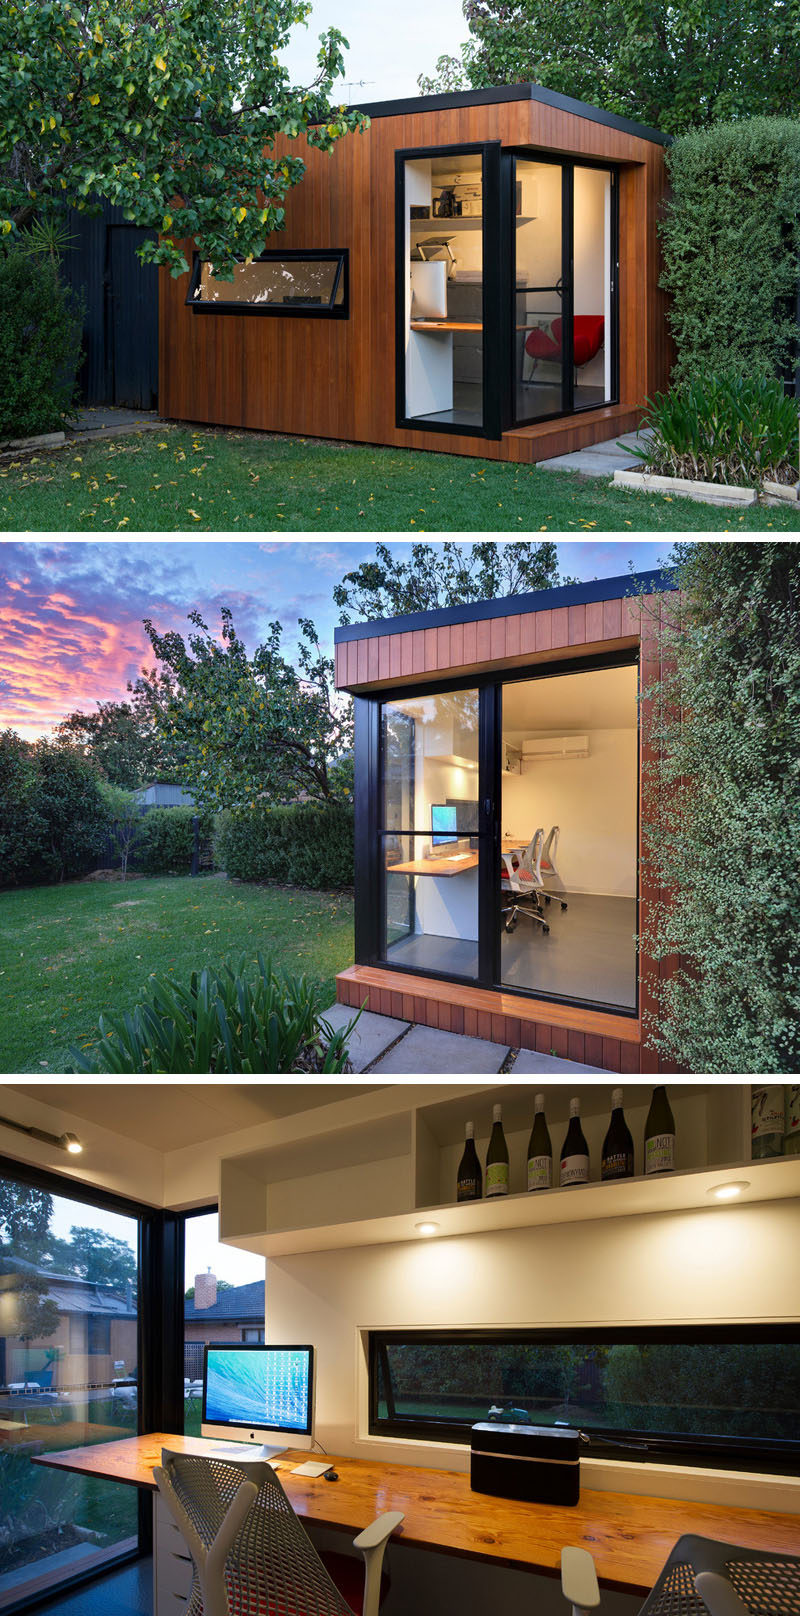 A prefab backyard home office is covered in wood and black trim surrounds the windows and sliding door.